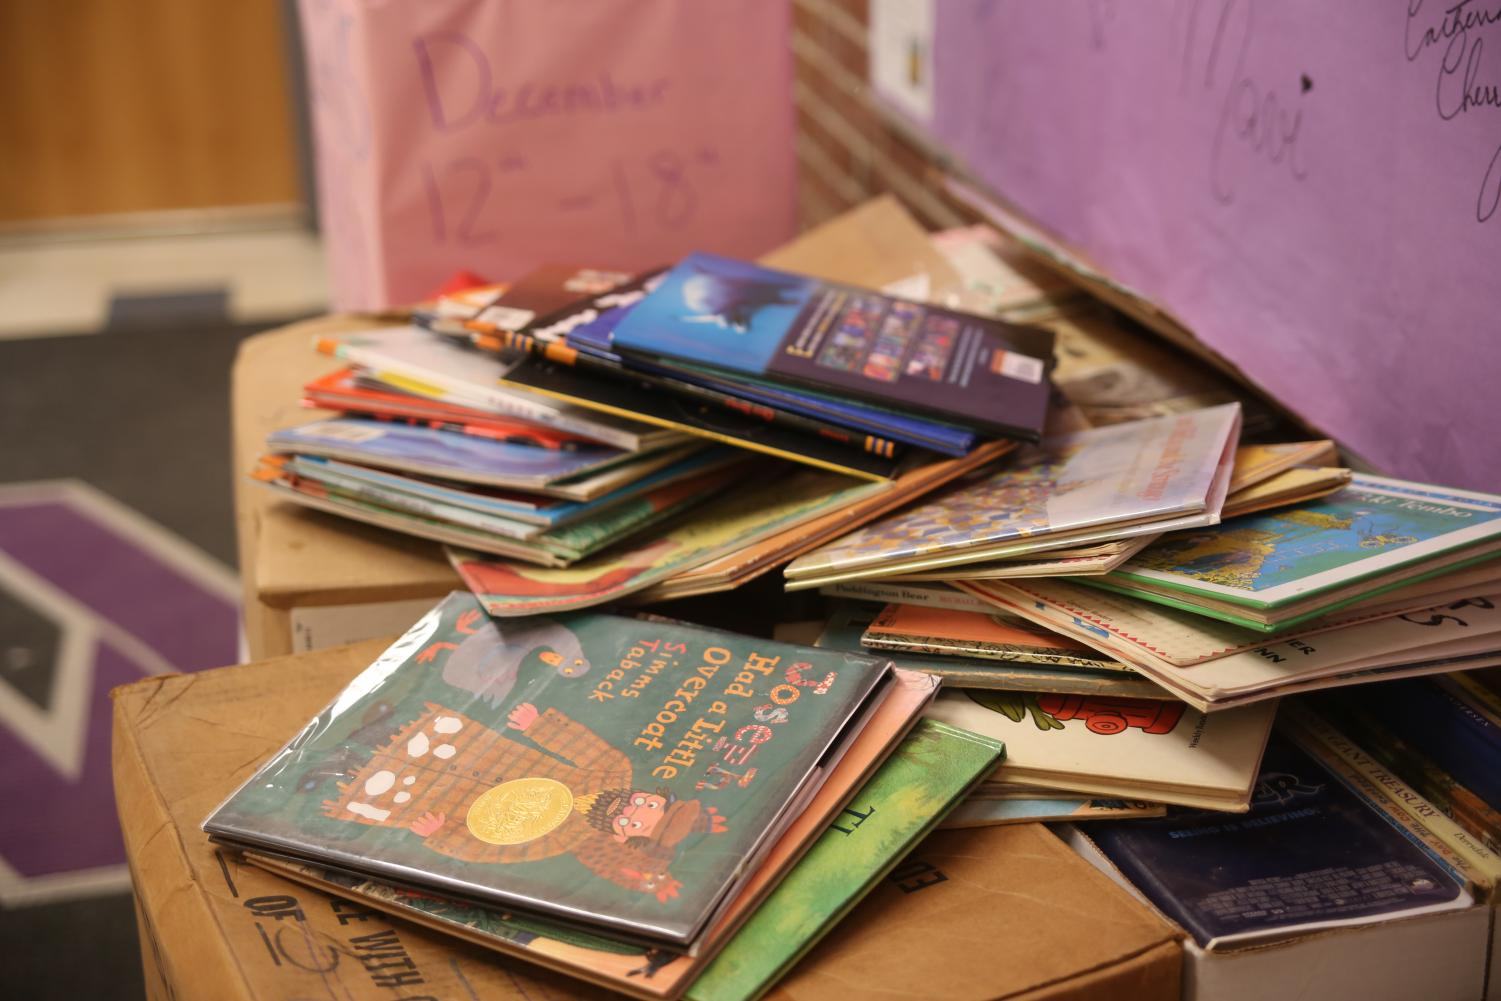 Donated books overflow from their boxes at the book drive.